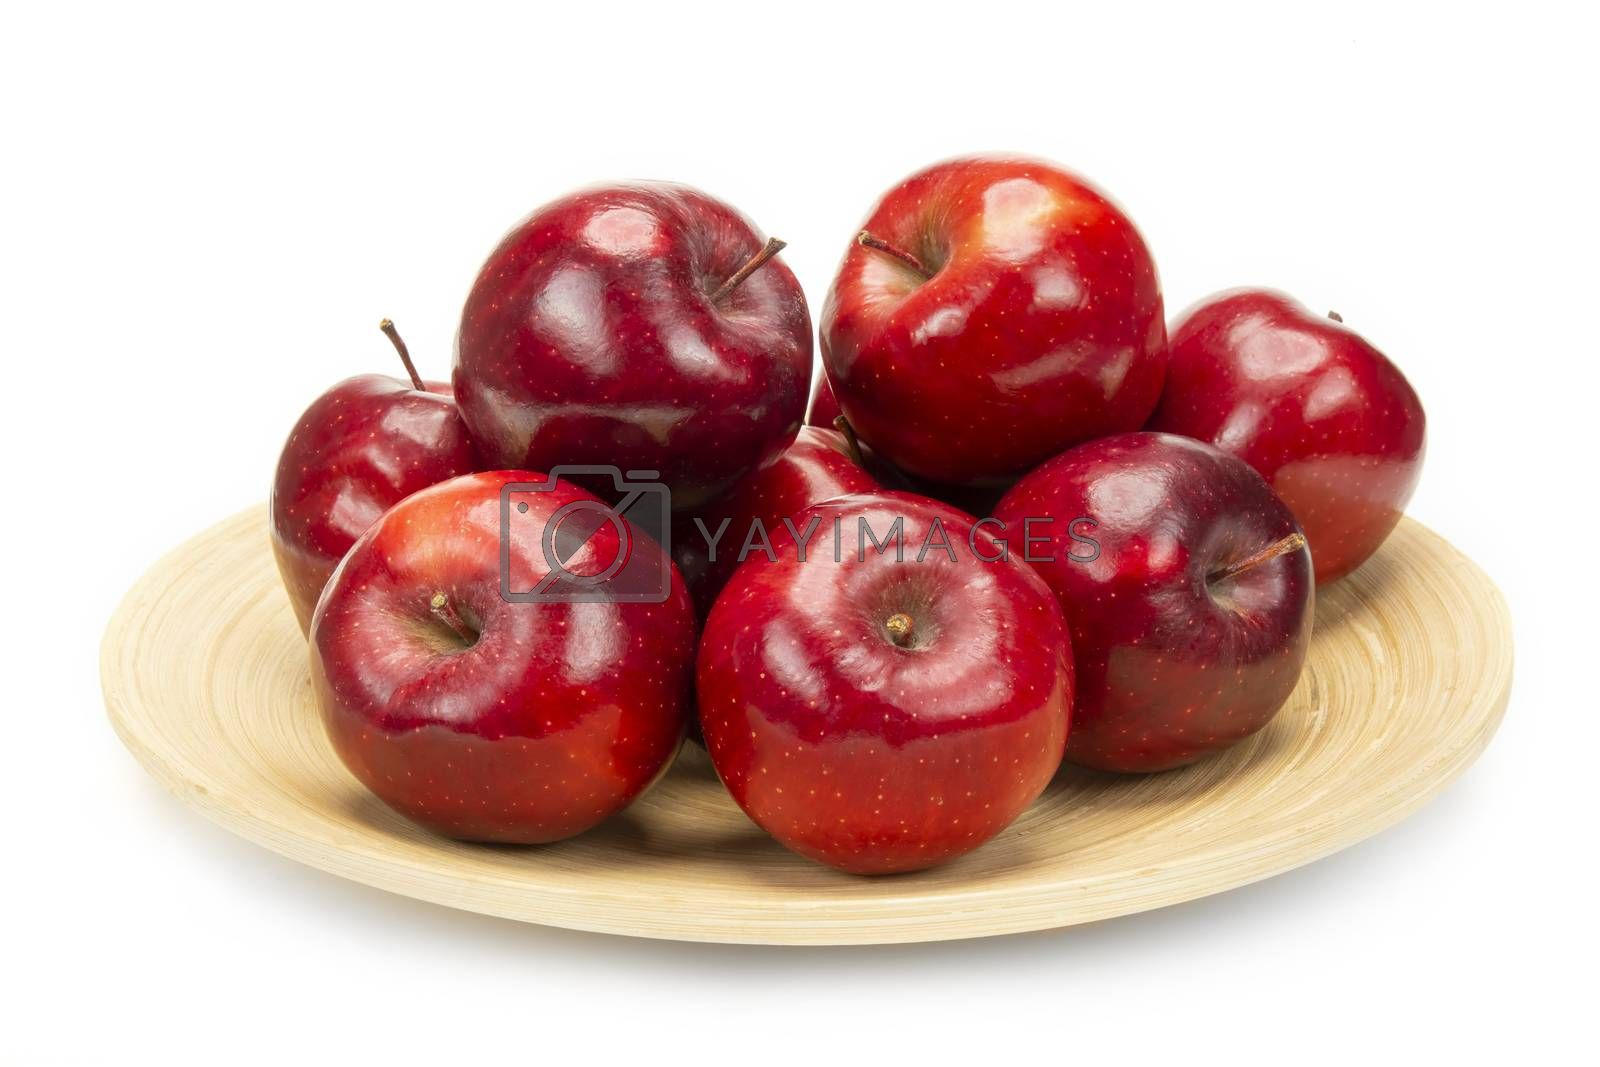 A bunch of fresh red apples on a bamboo plate, isolated on white background.